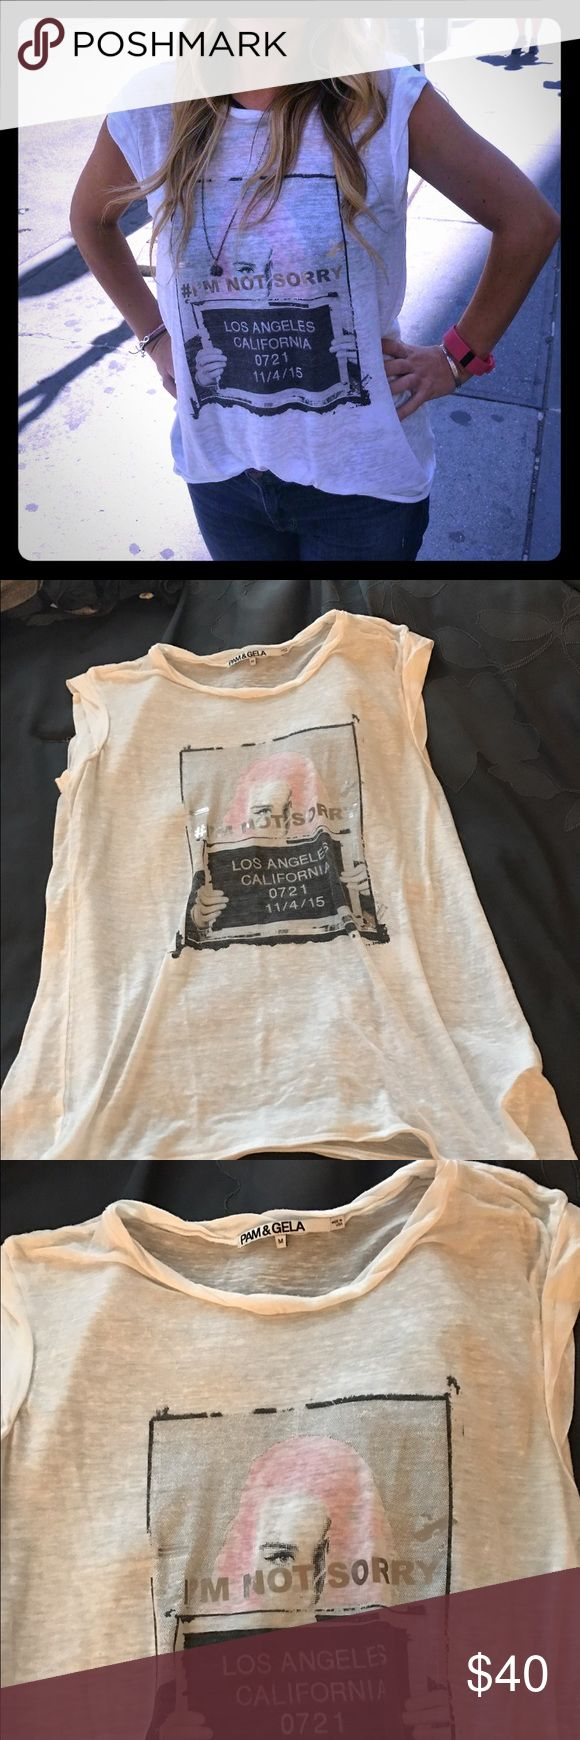 """White soft tee Pam & Gela white soft tee saying """"sorry I'm not sorry"""". Excellent condition. pam & gela Tops Tees - Short Sleeve"""